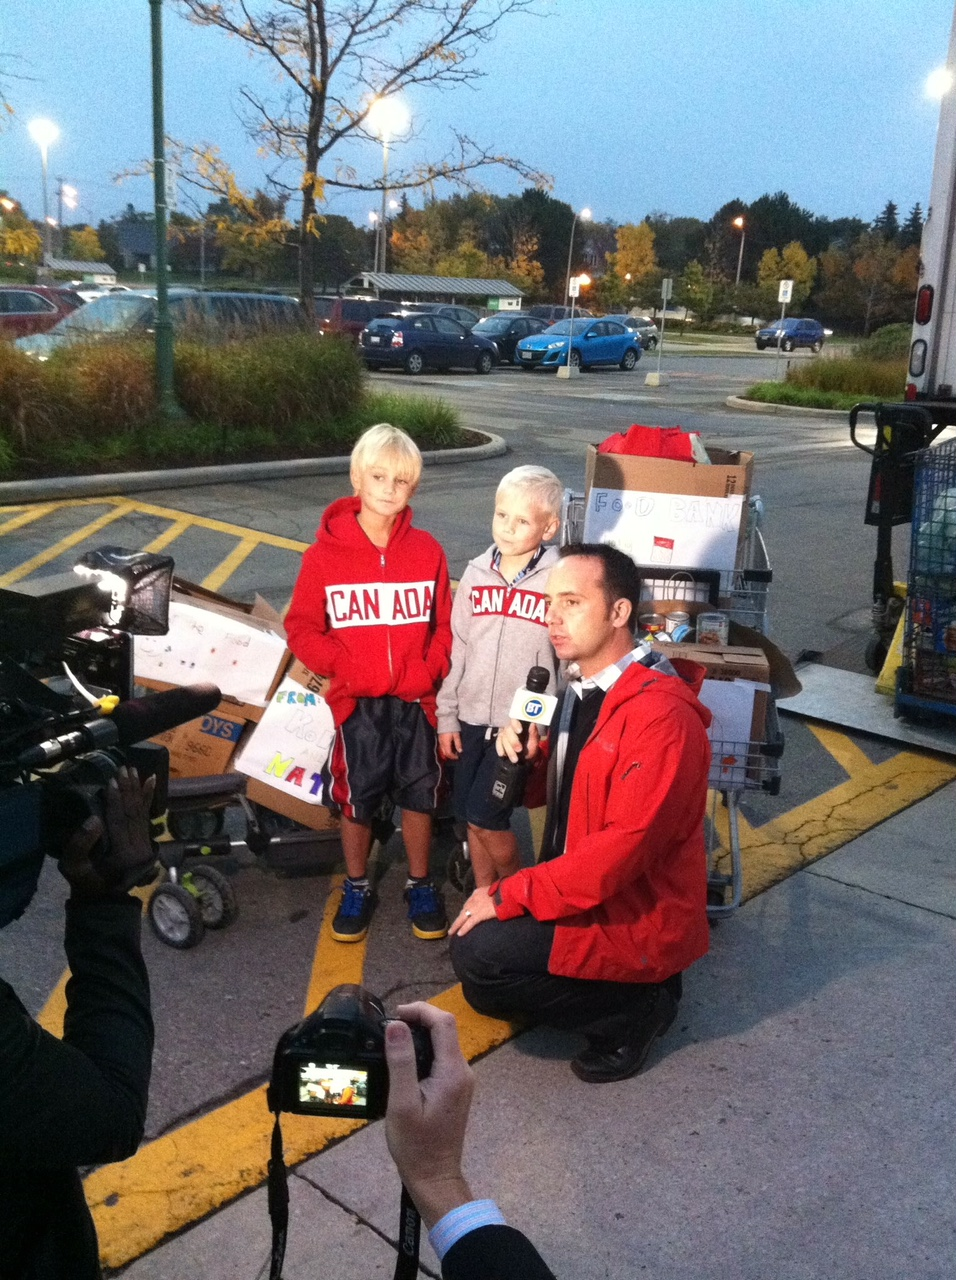 A few years ago, the annual food drive Nancy Milton and her children go on caught the eye of Citytv.